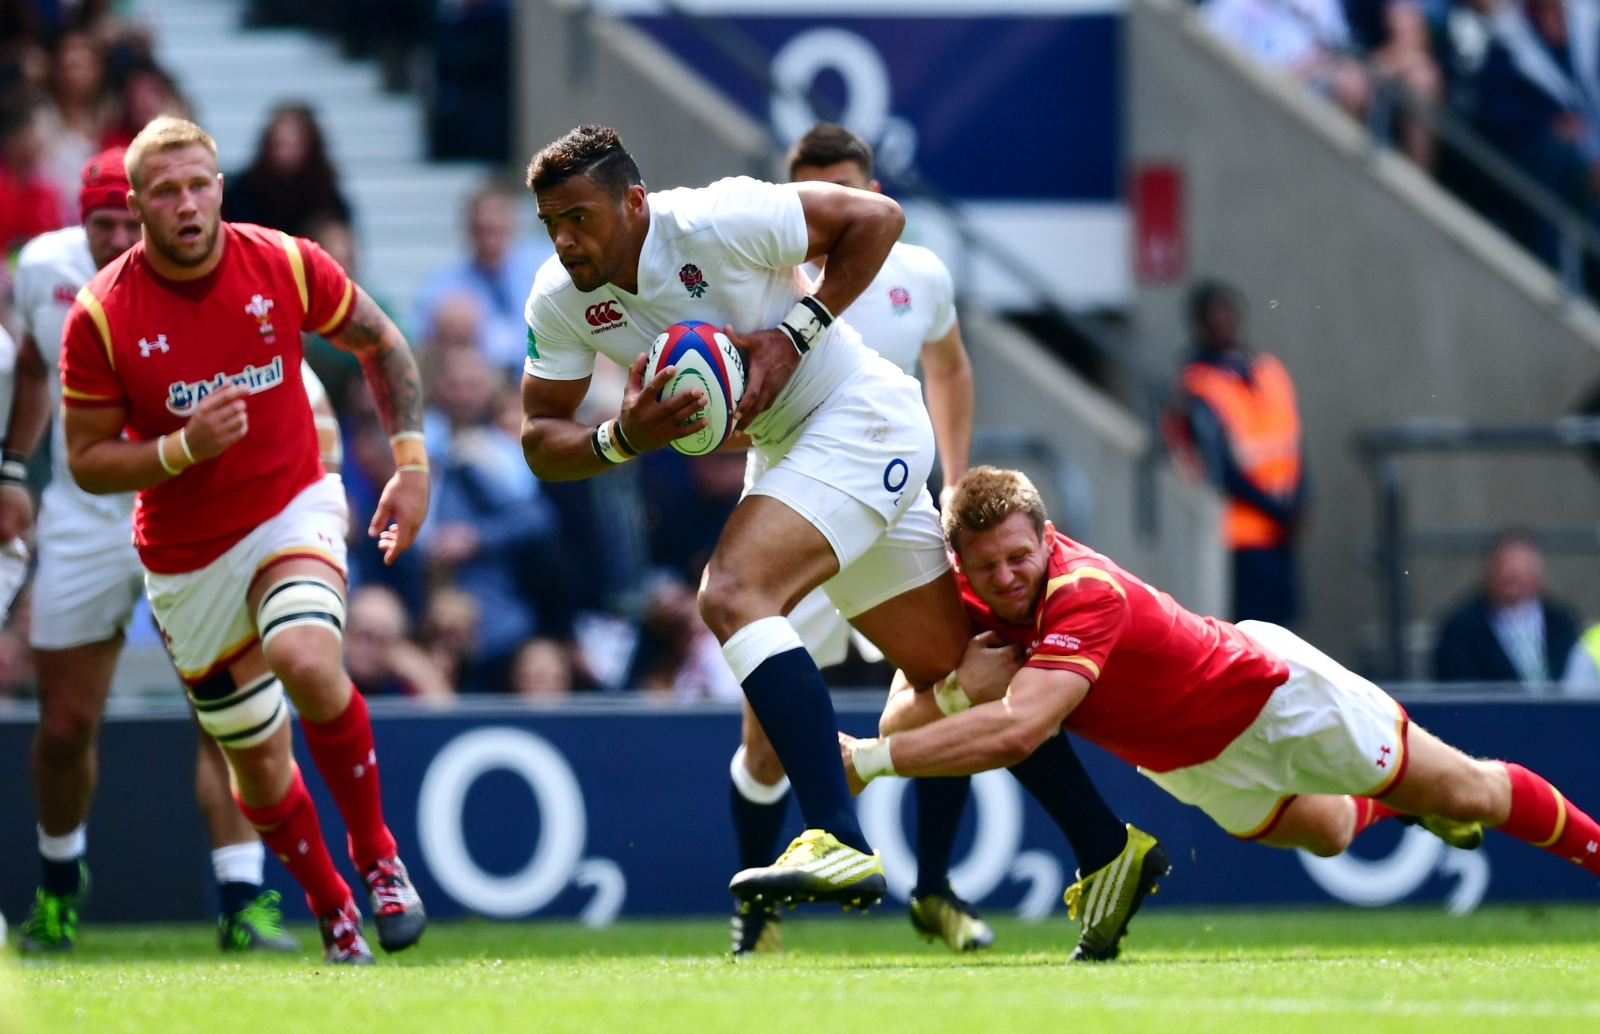 Luther Burrell scored one of England's tries